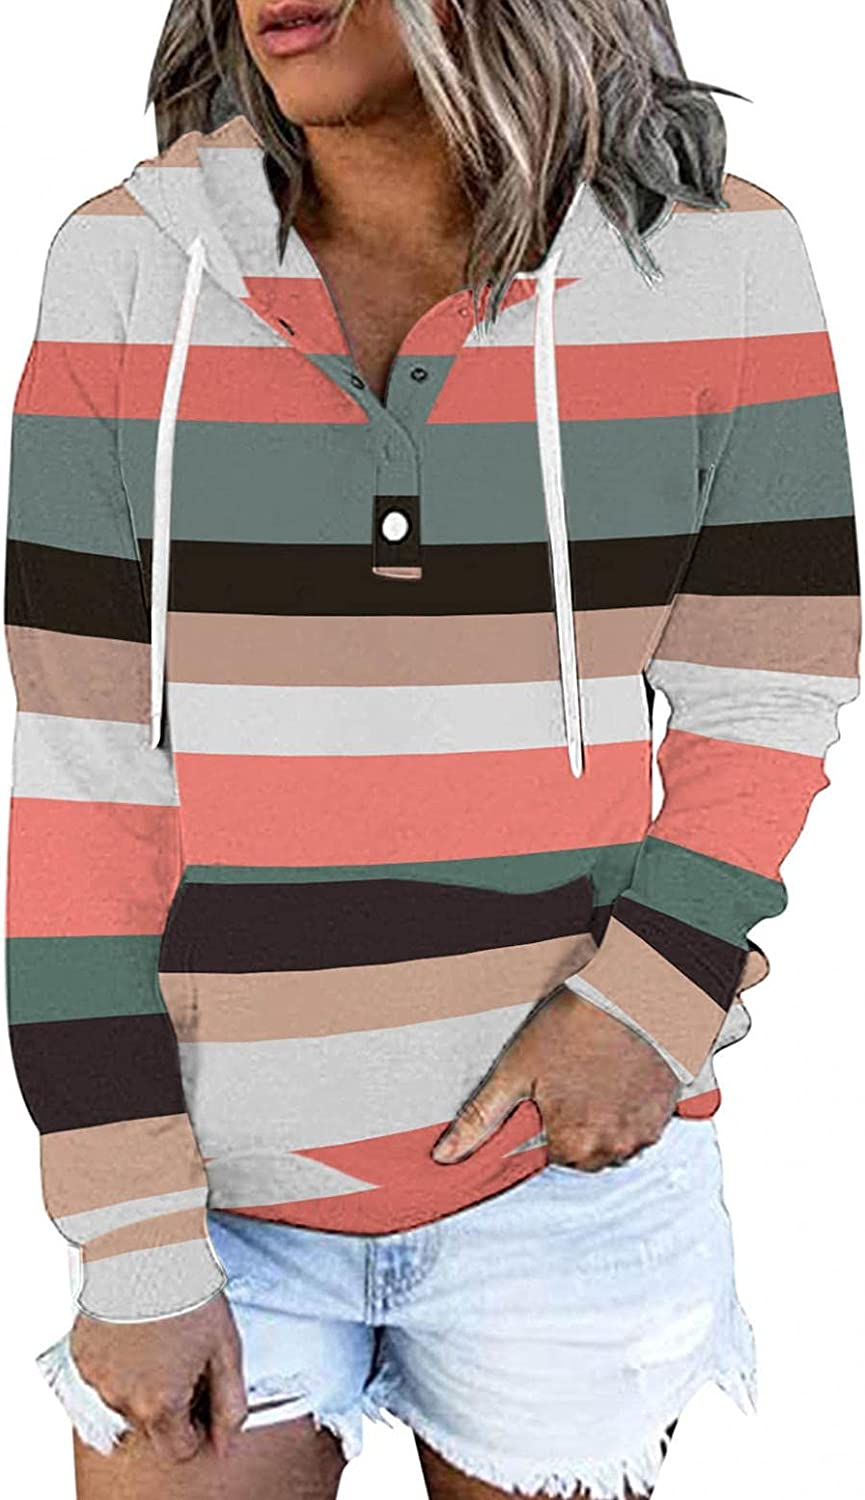 POLLYANNA KEONG Hoodies for Women,Drawstring Pullover Striped Pocket Long Sleeve Button Down Casual Sweatshirts